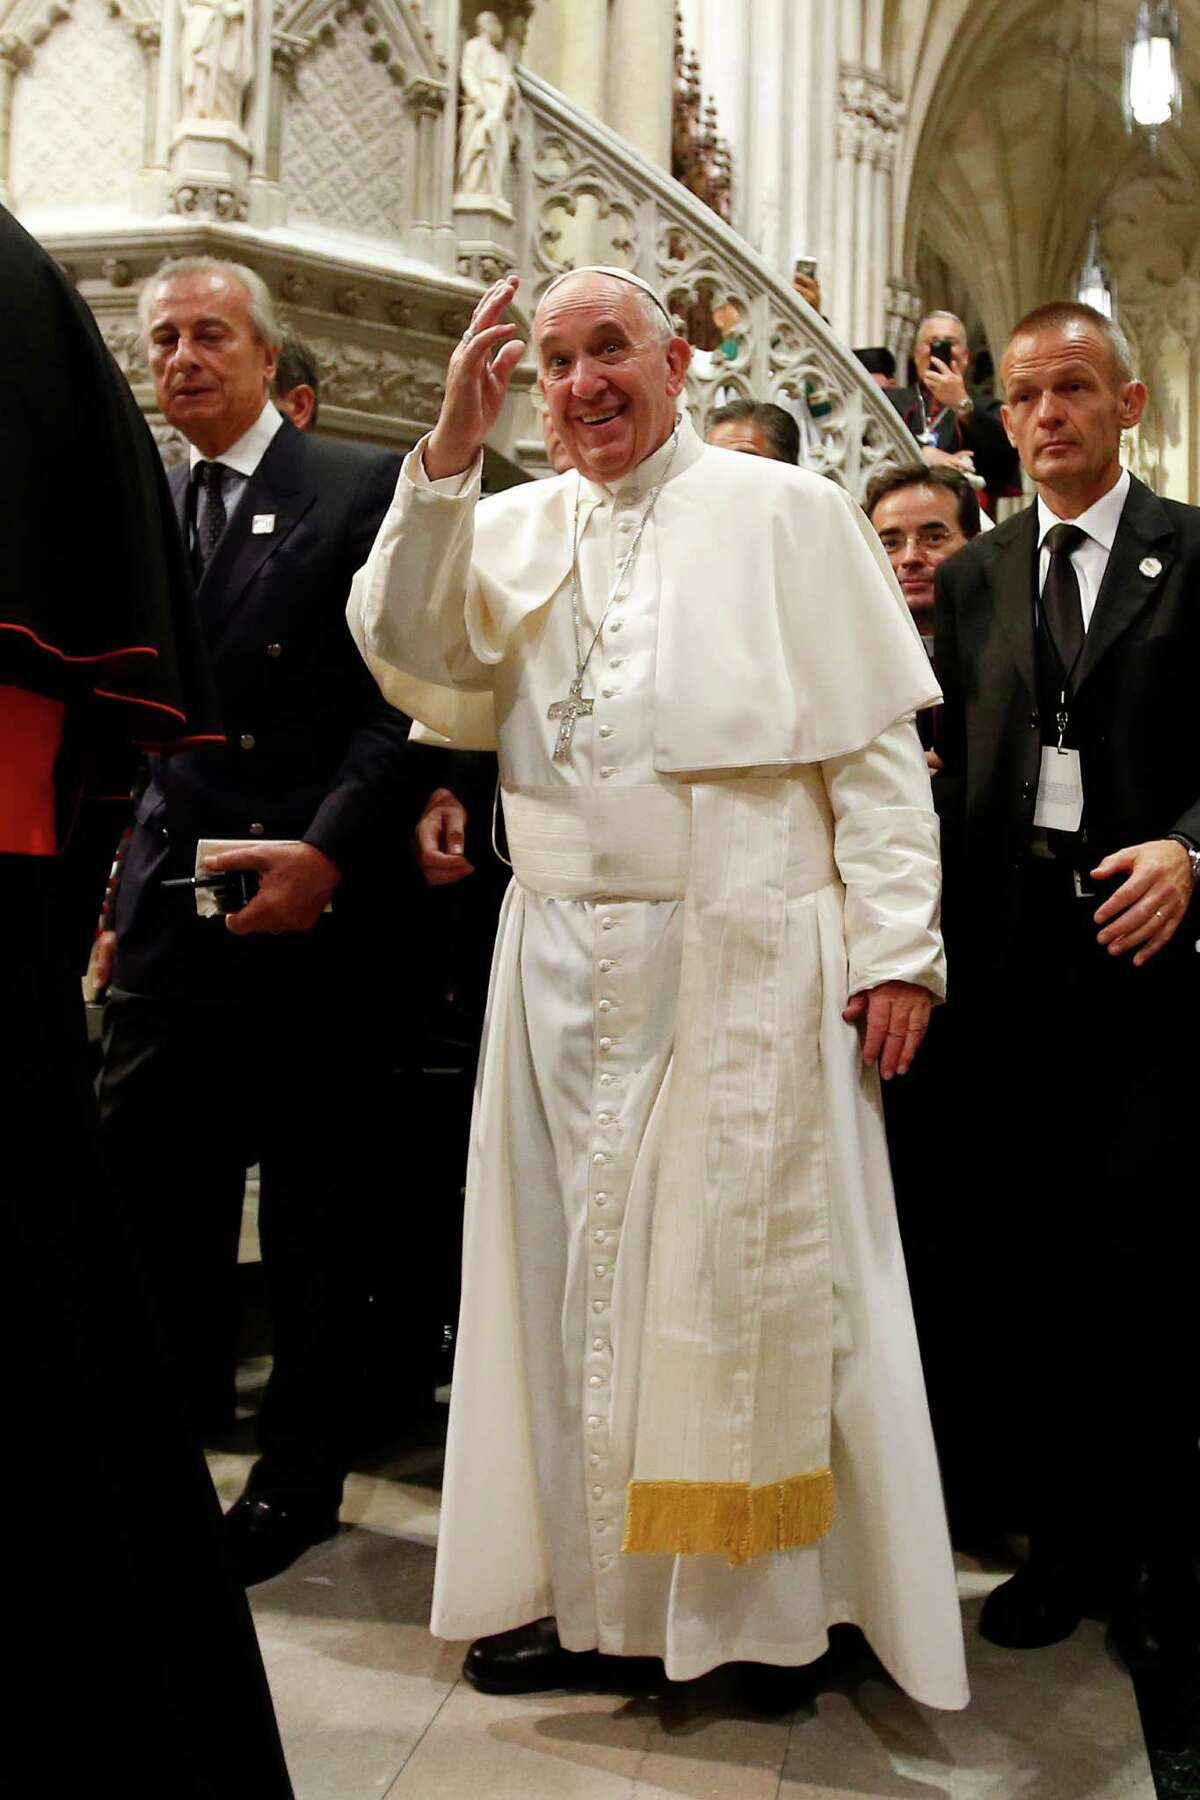 Pope Francis, center, waves as he leaves after leading an evening prayer service at St. Patrick's Cathedral, Thursday, Sept. 24, 2015, in New York.